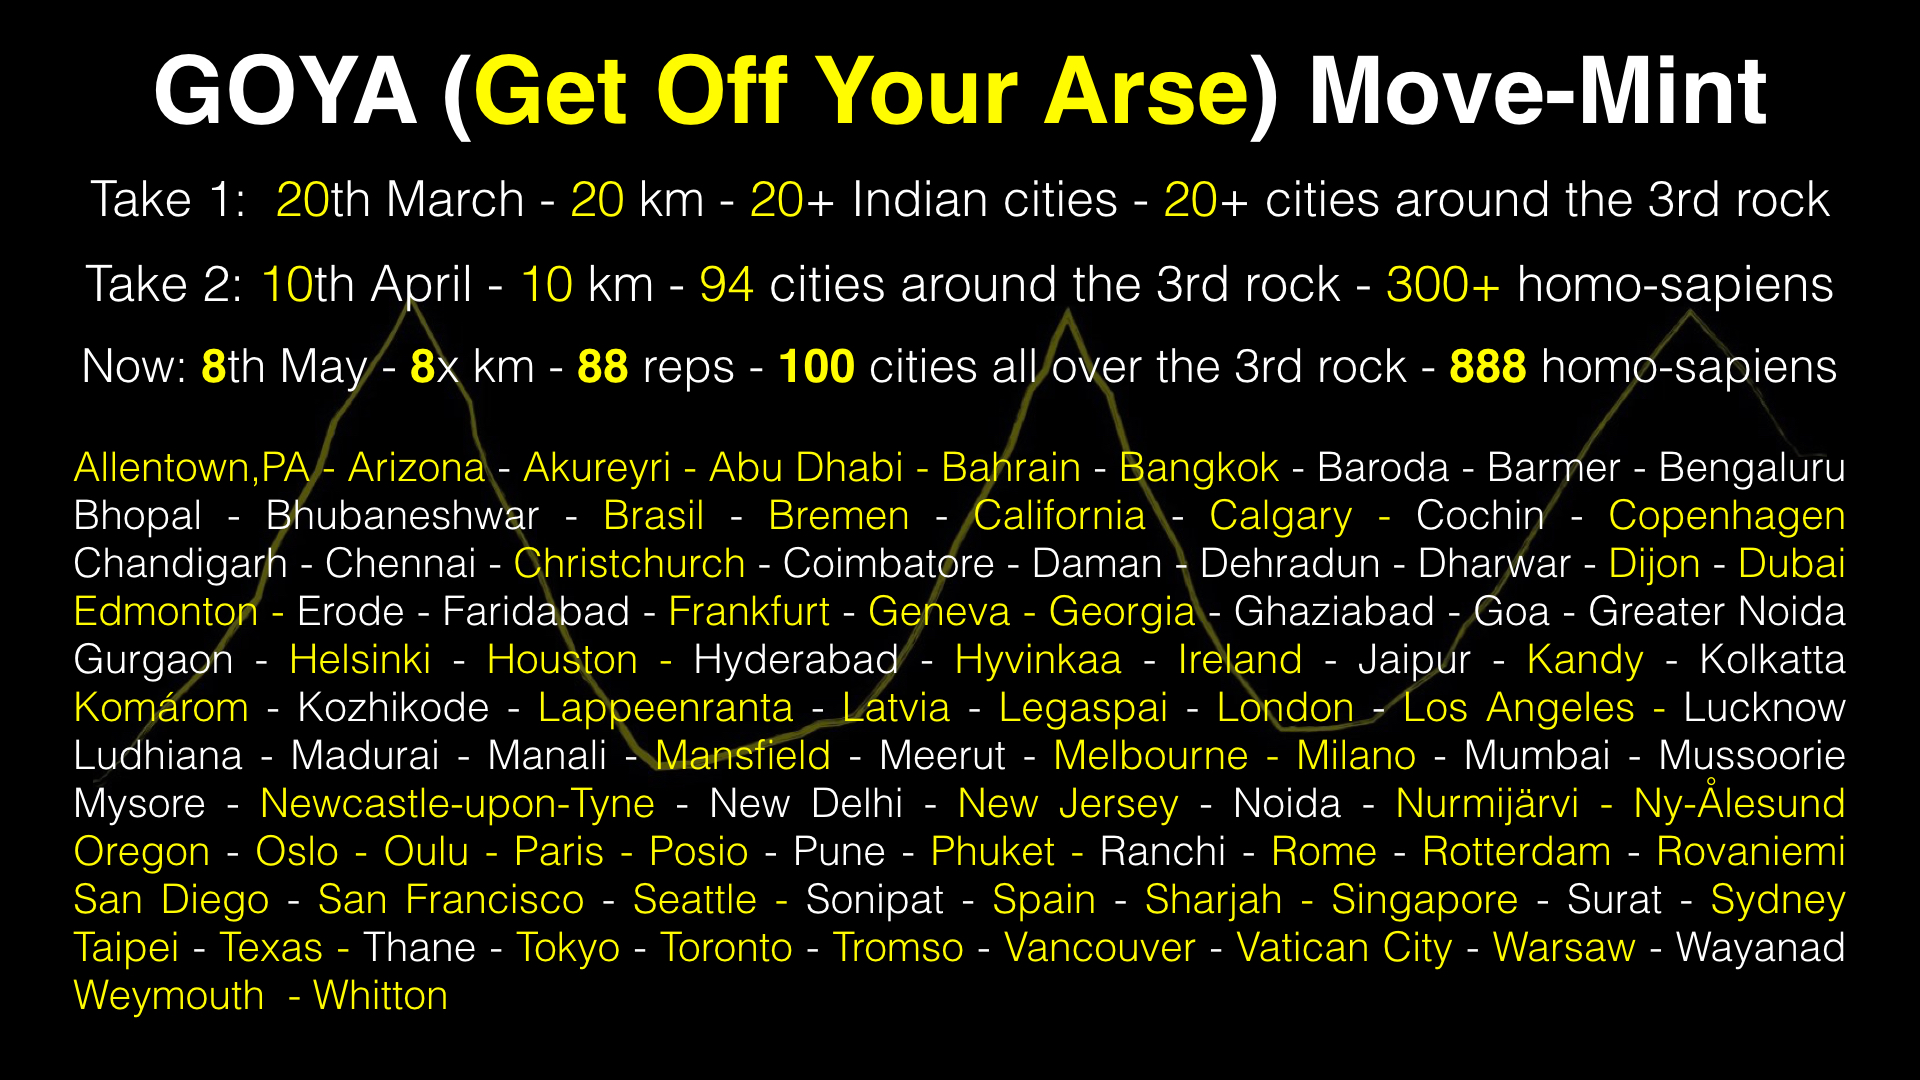 It didn't happen overnight, and it didn't happen in take one,but we got to 1000+ folks in 100+ cities by the third take.